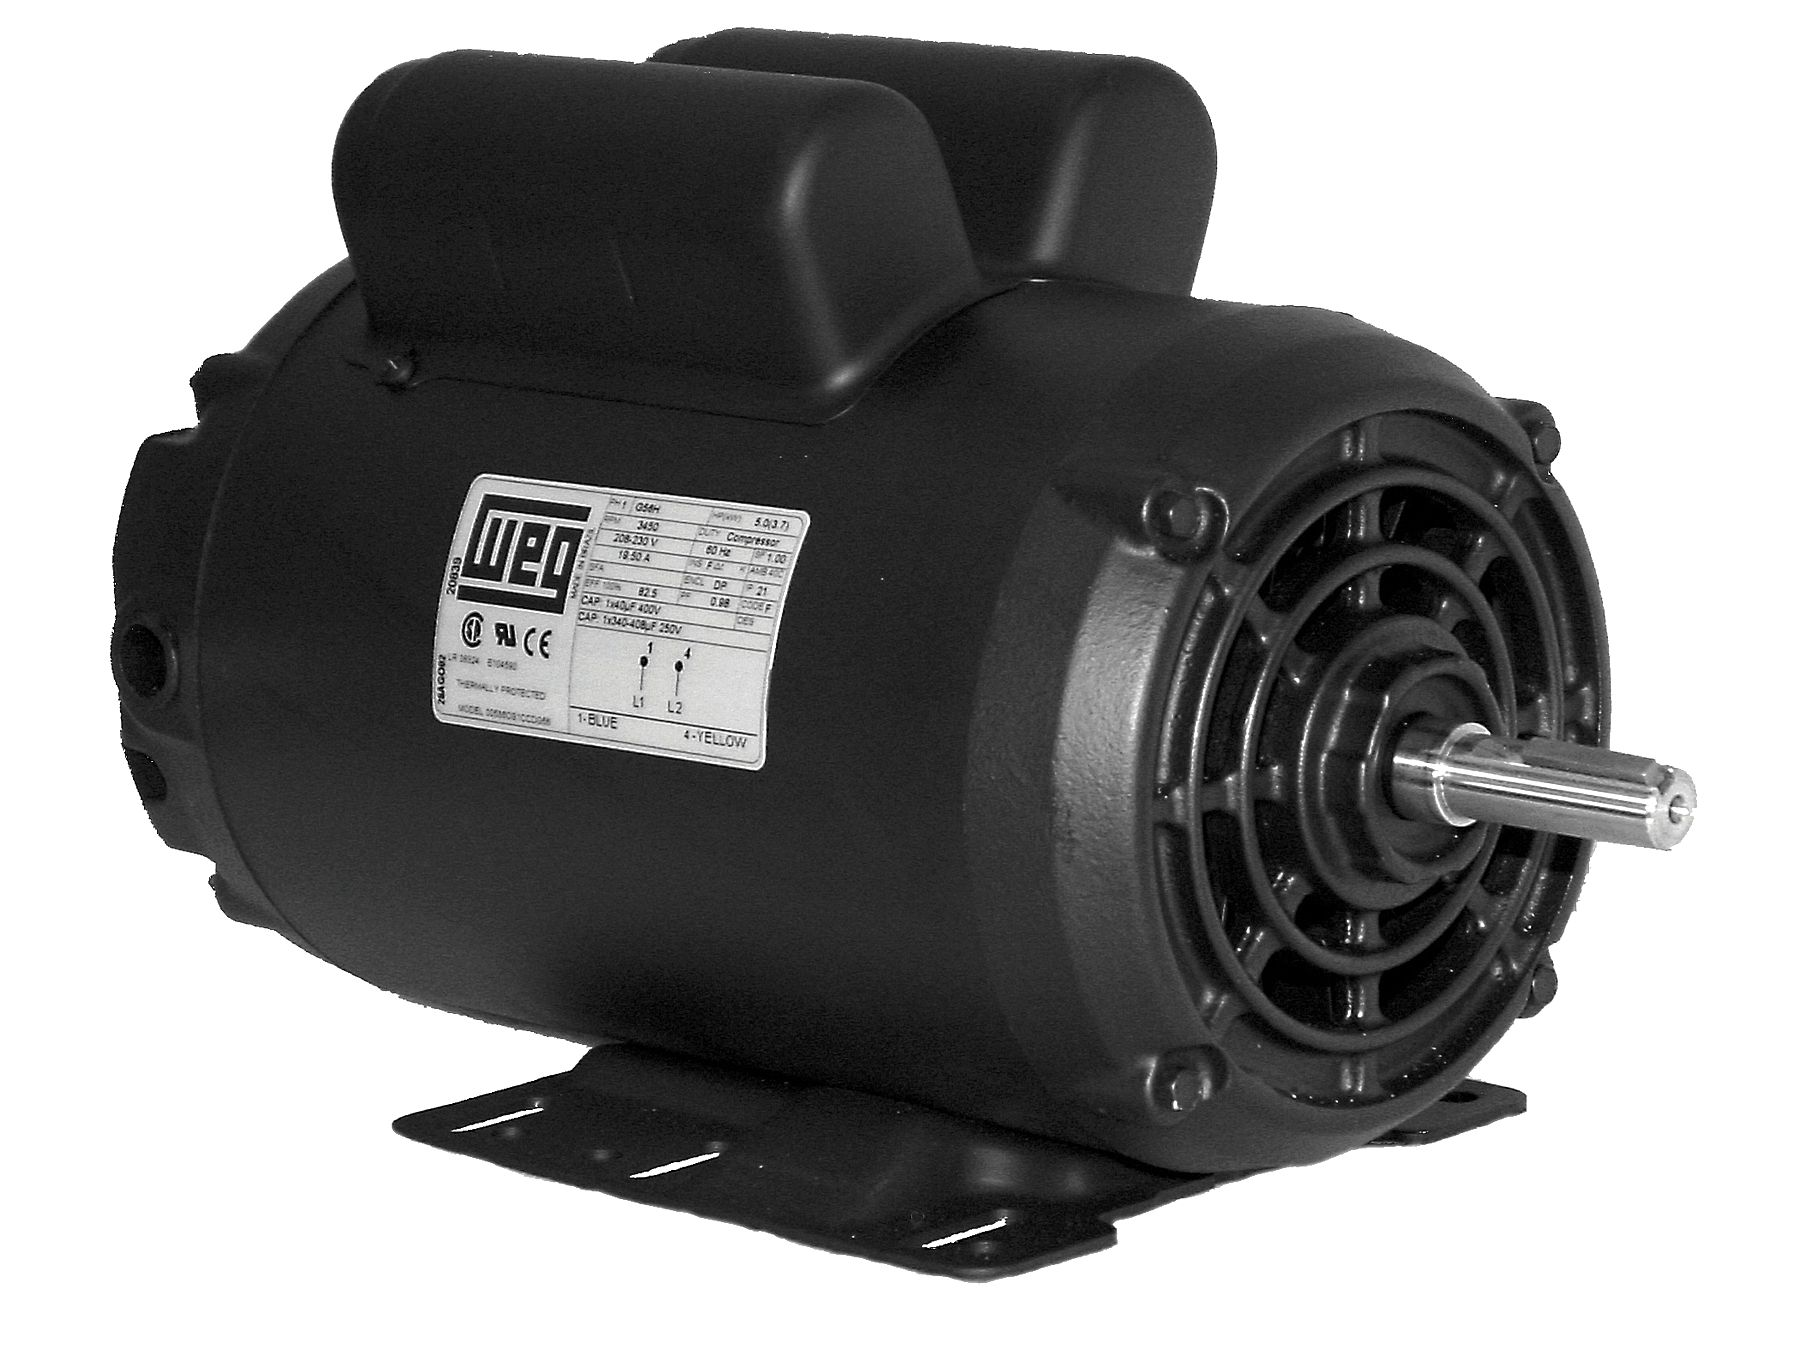 00518os1ccd184t Weg Electric Motors